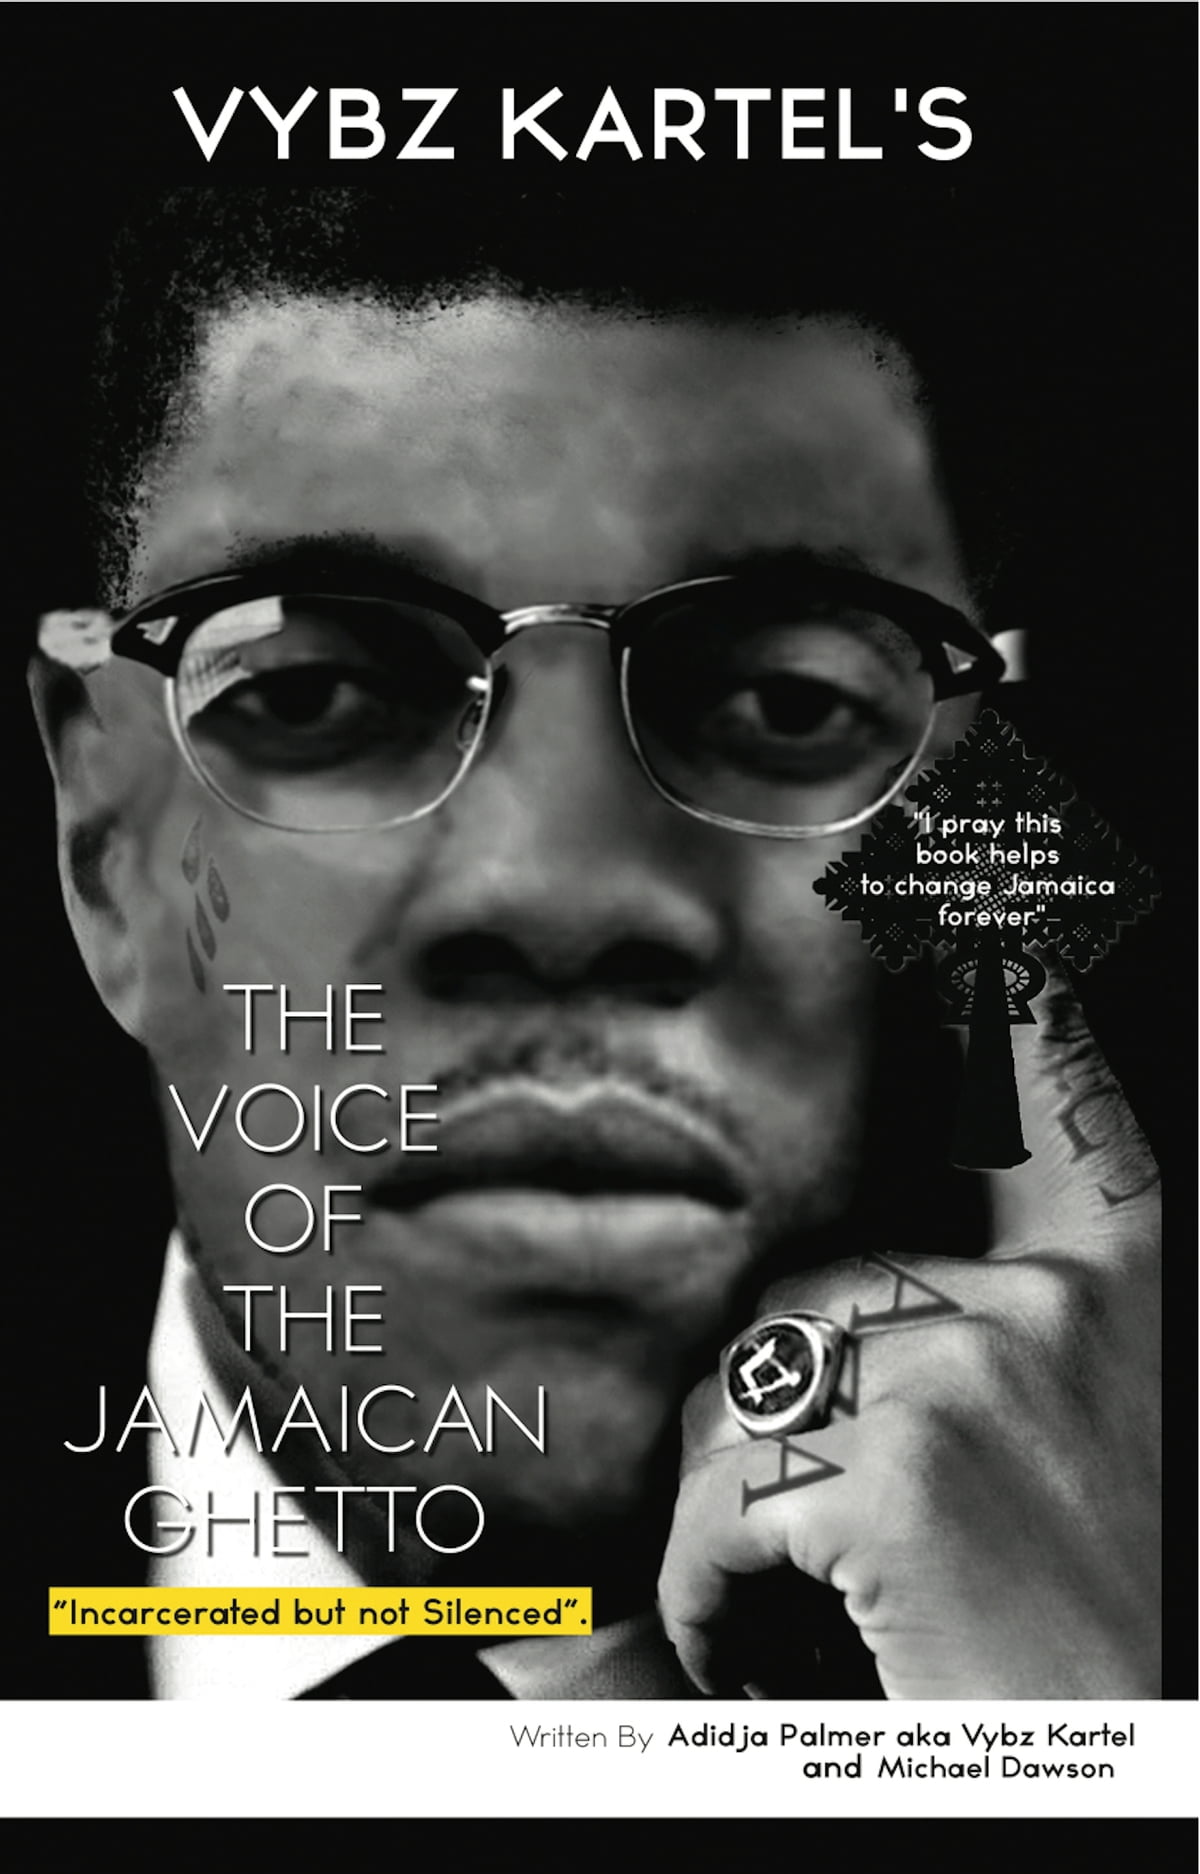 The Voice Of The Jamaican Ghetto